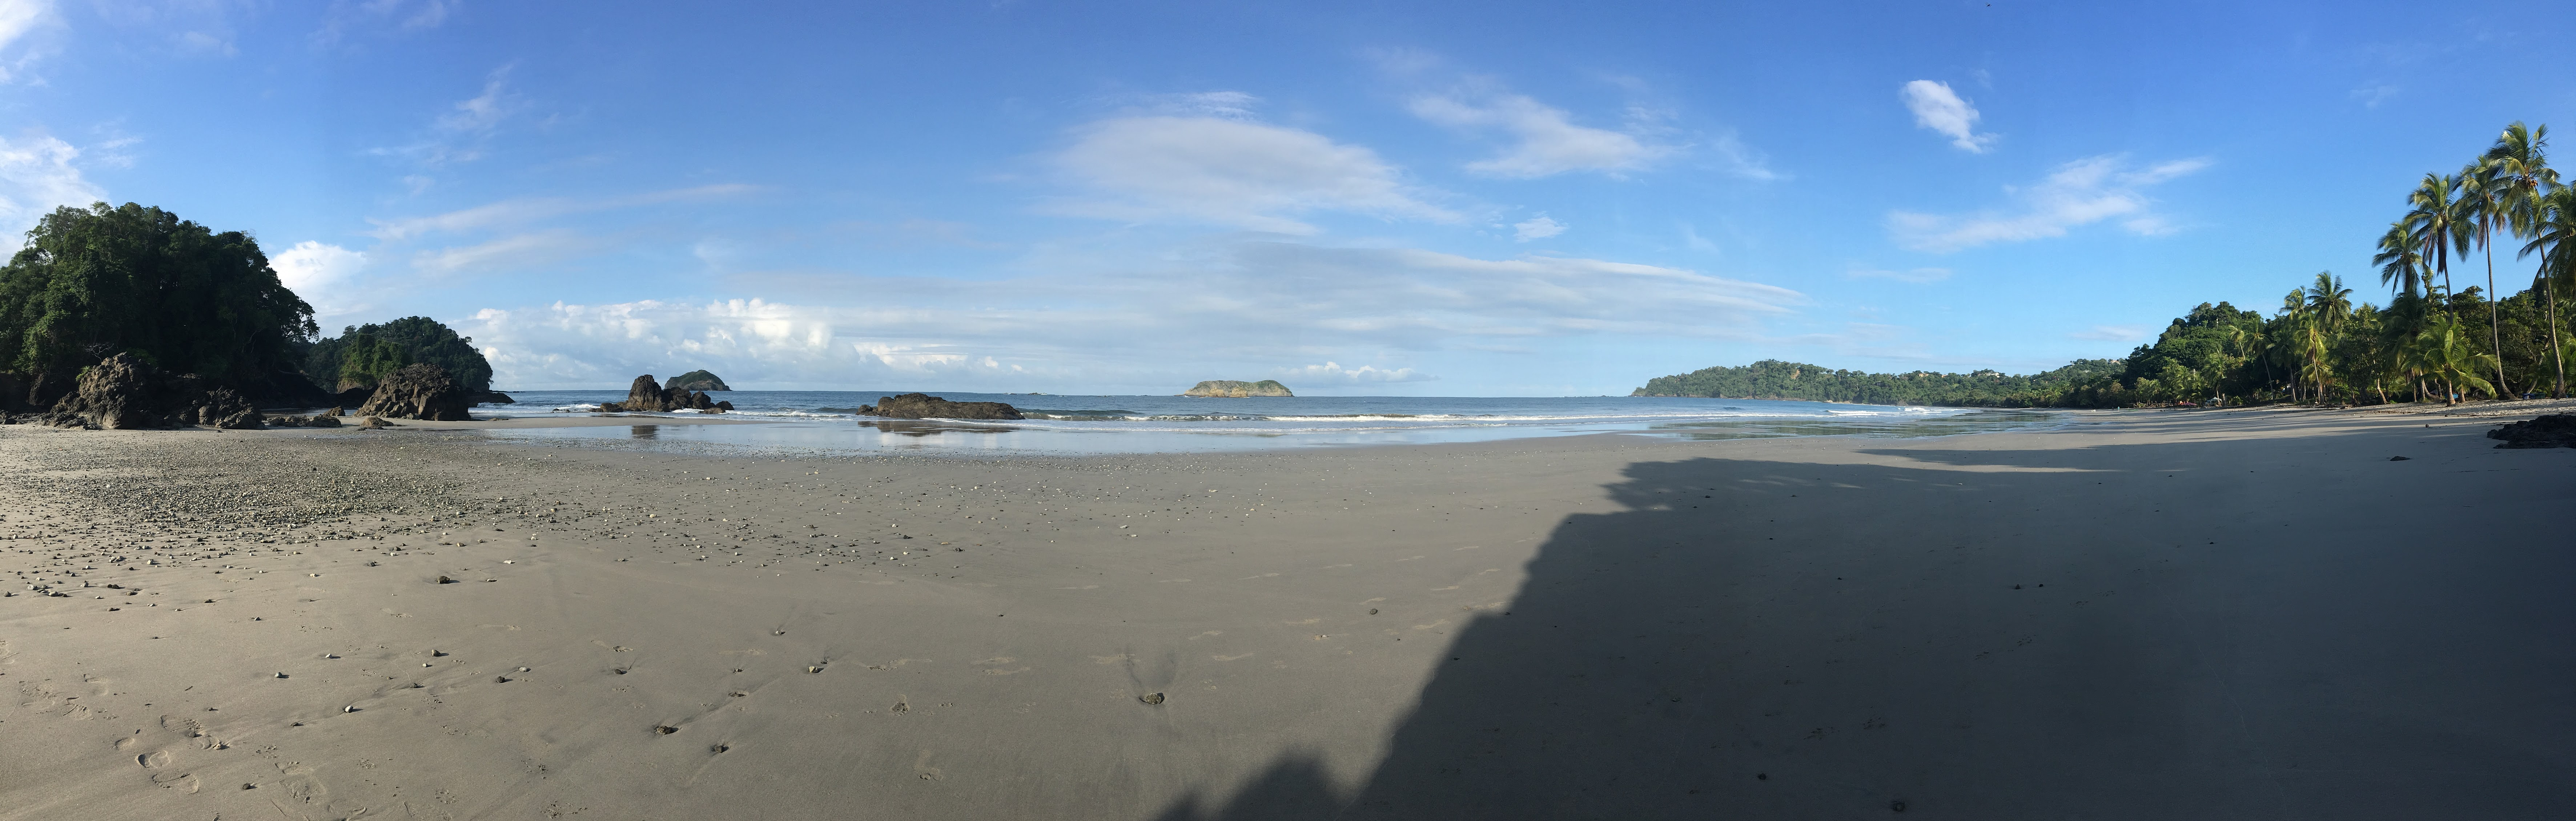 Playa Espadilla - Manuel Antonio in the early morning, outside of the national park